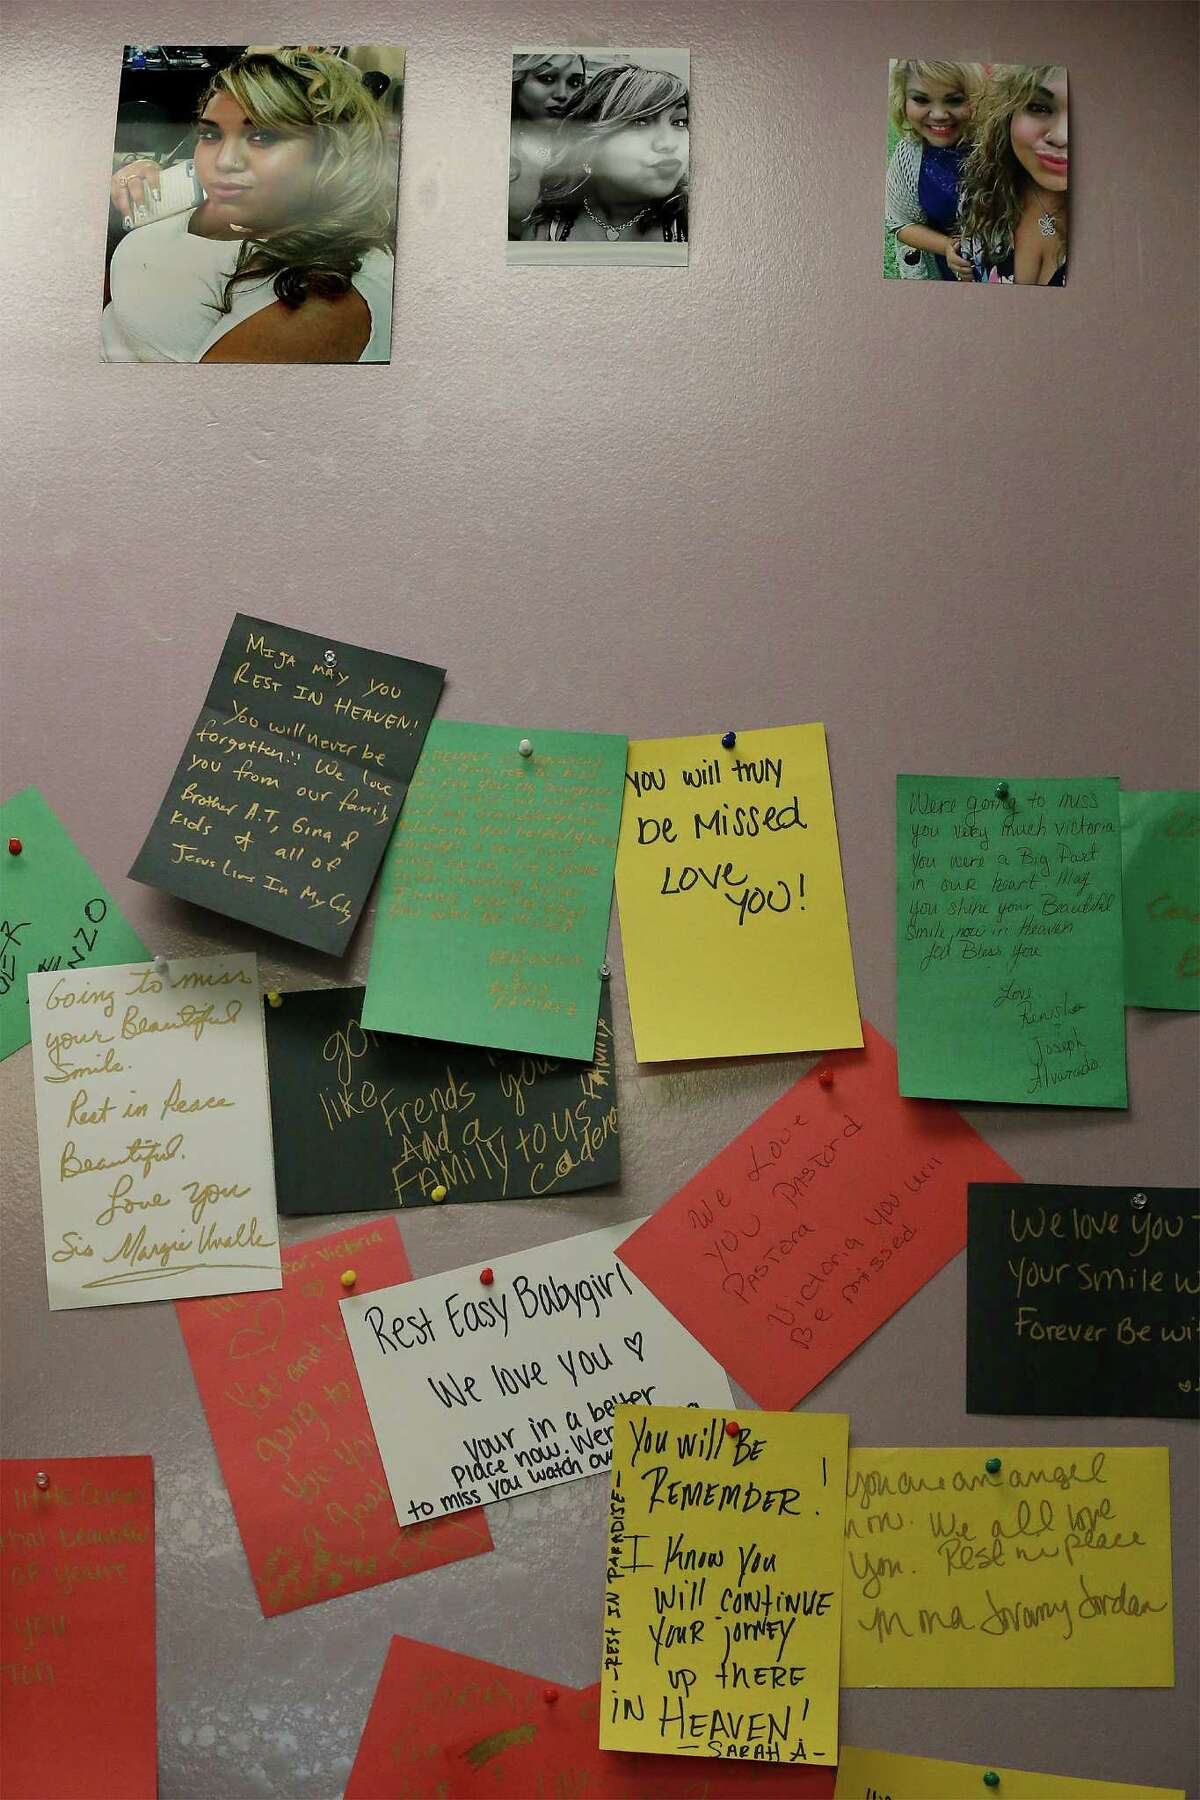 A memorial board with messages left by mourners is seen as hundreds attend a prayer service and candlelight vigil at Last Chance Ministries for Victoria Robles who was killed in an auto accident early Tuesday near Southeast Loop 410. Two children were also fatalities in the accident. Robles' father whom the congregation call Pastor Jimmy has led the church at 404 Brady Boulevard for the past 5 years. After a sermon, mourners were led outside to light candles to remember the outgoing 19-year-old girl. After a prayer, balloons were then released as mourners said aloud,